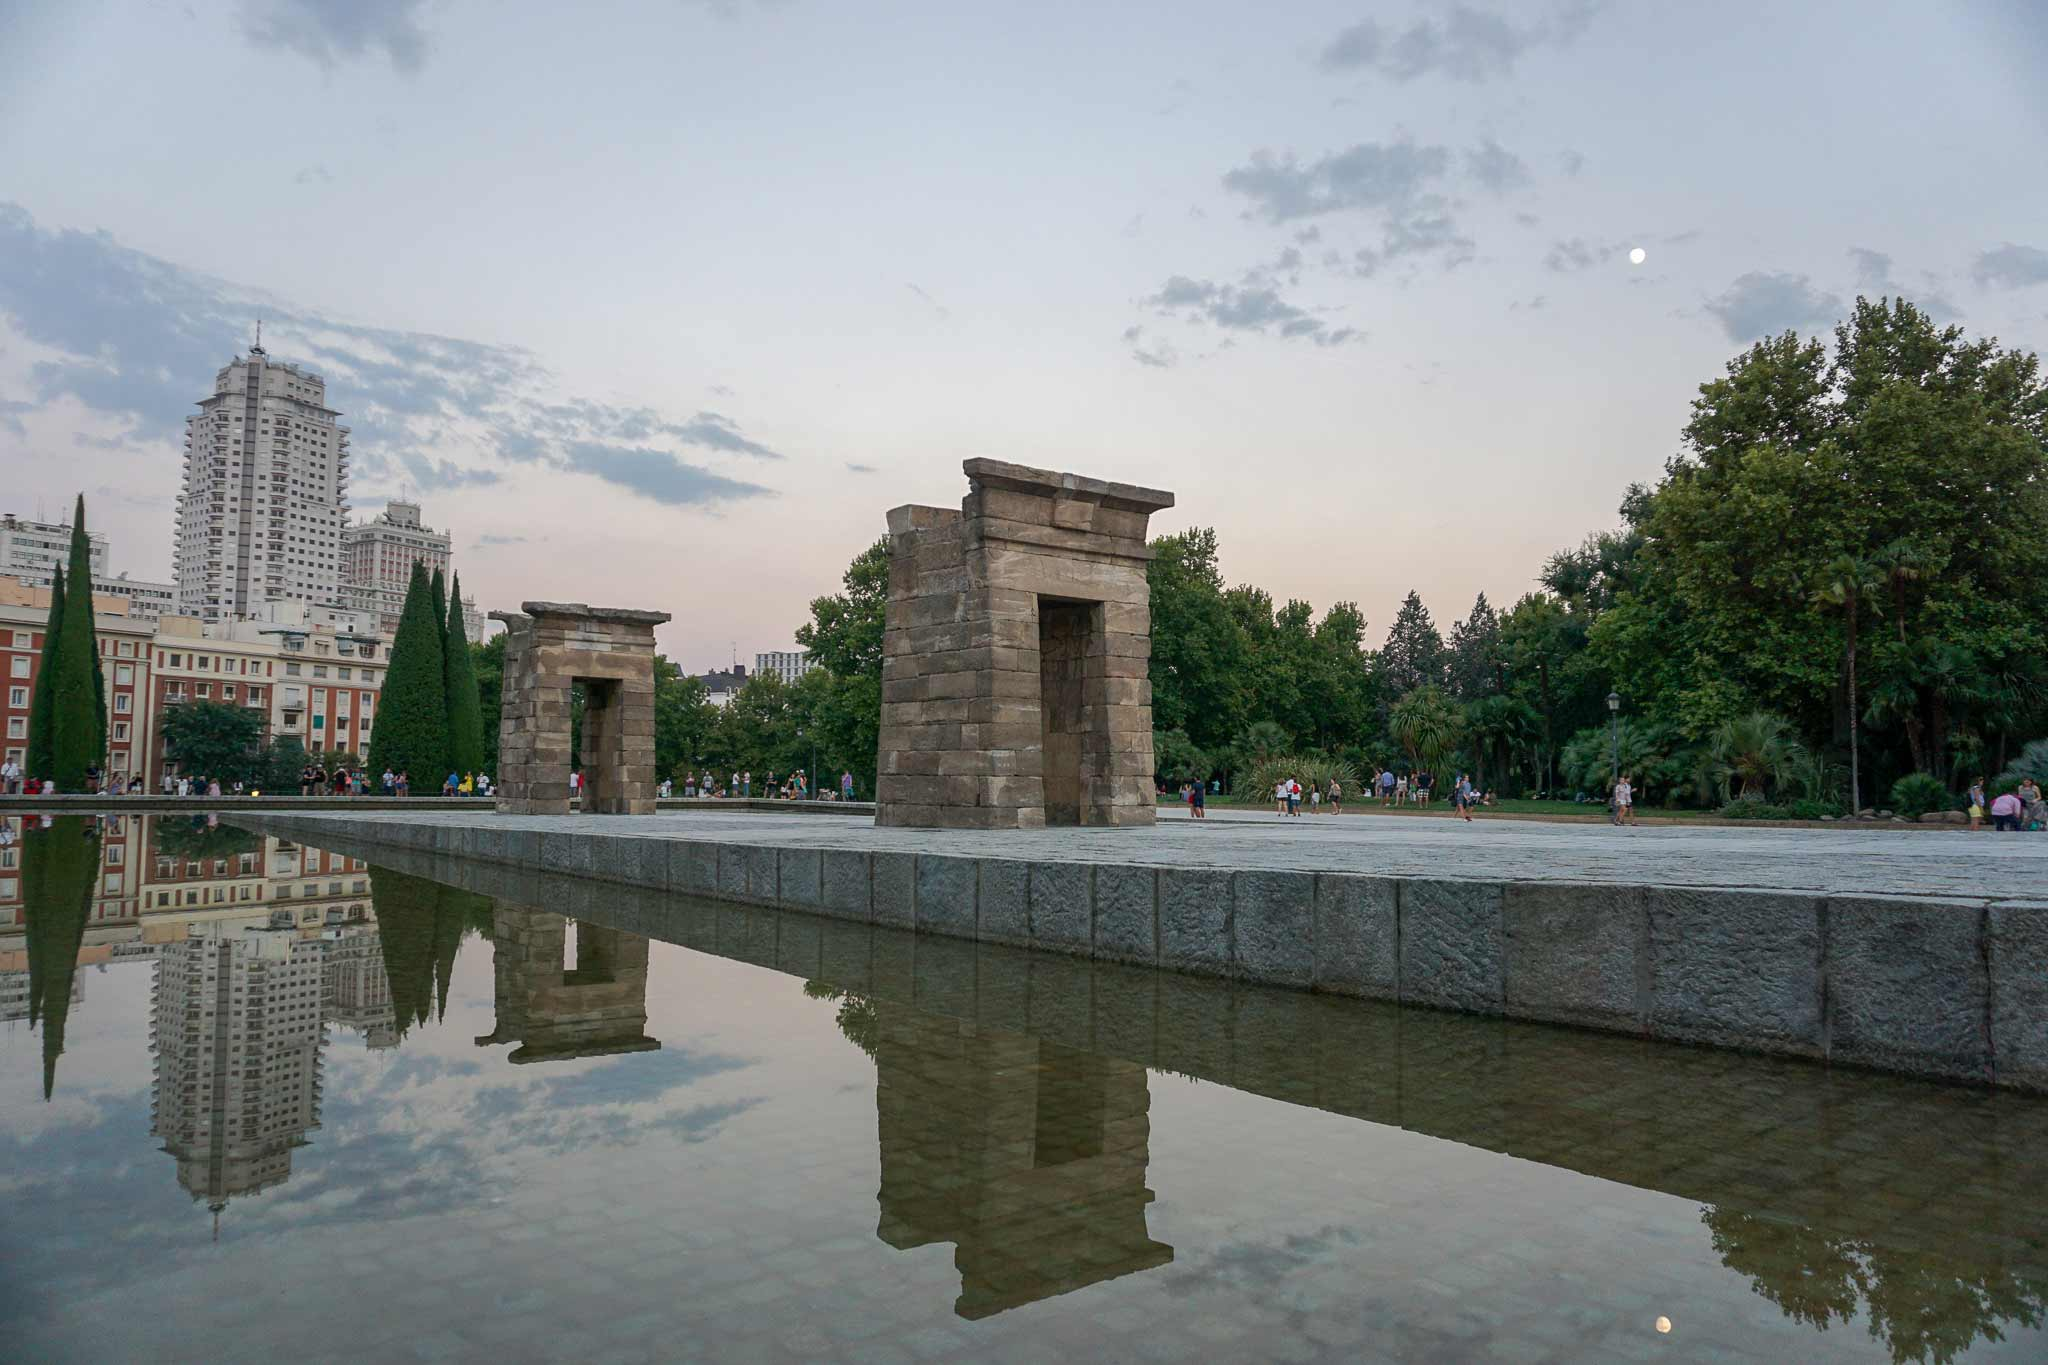 A picture of the Temple of Debod, an Egyptian temple, in Madrid, Spain.